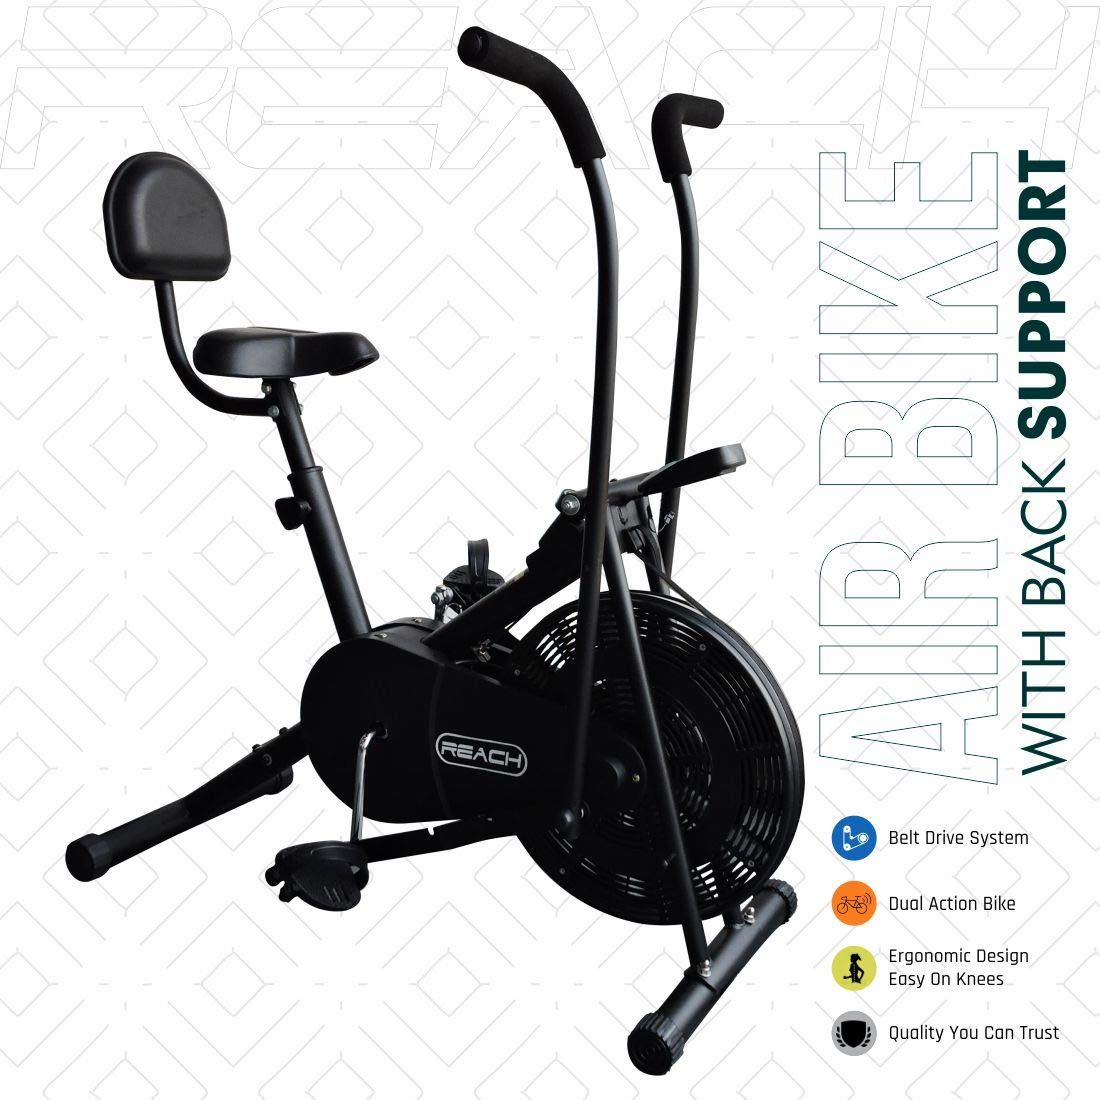 Reach Ab 110 Air Bike Exercise Cycle India 2020 In 2020 Biking Workout Best Exercise Bike Cycling Workout